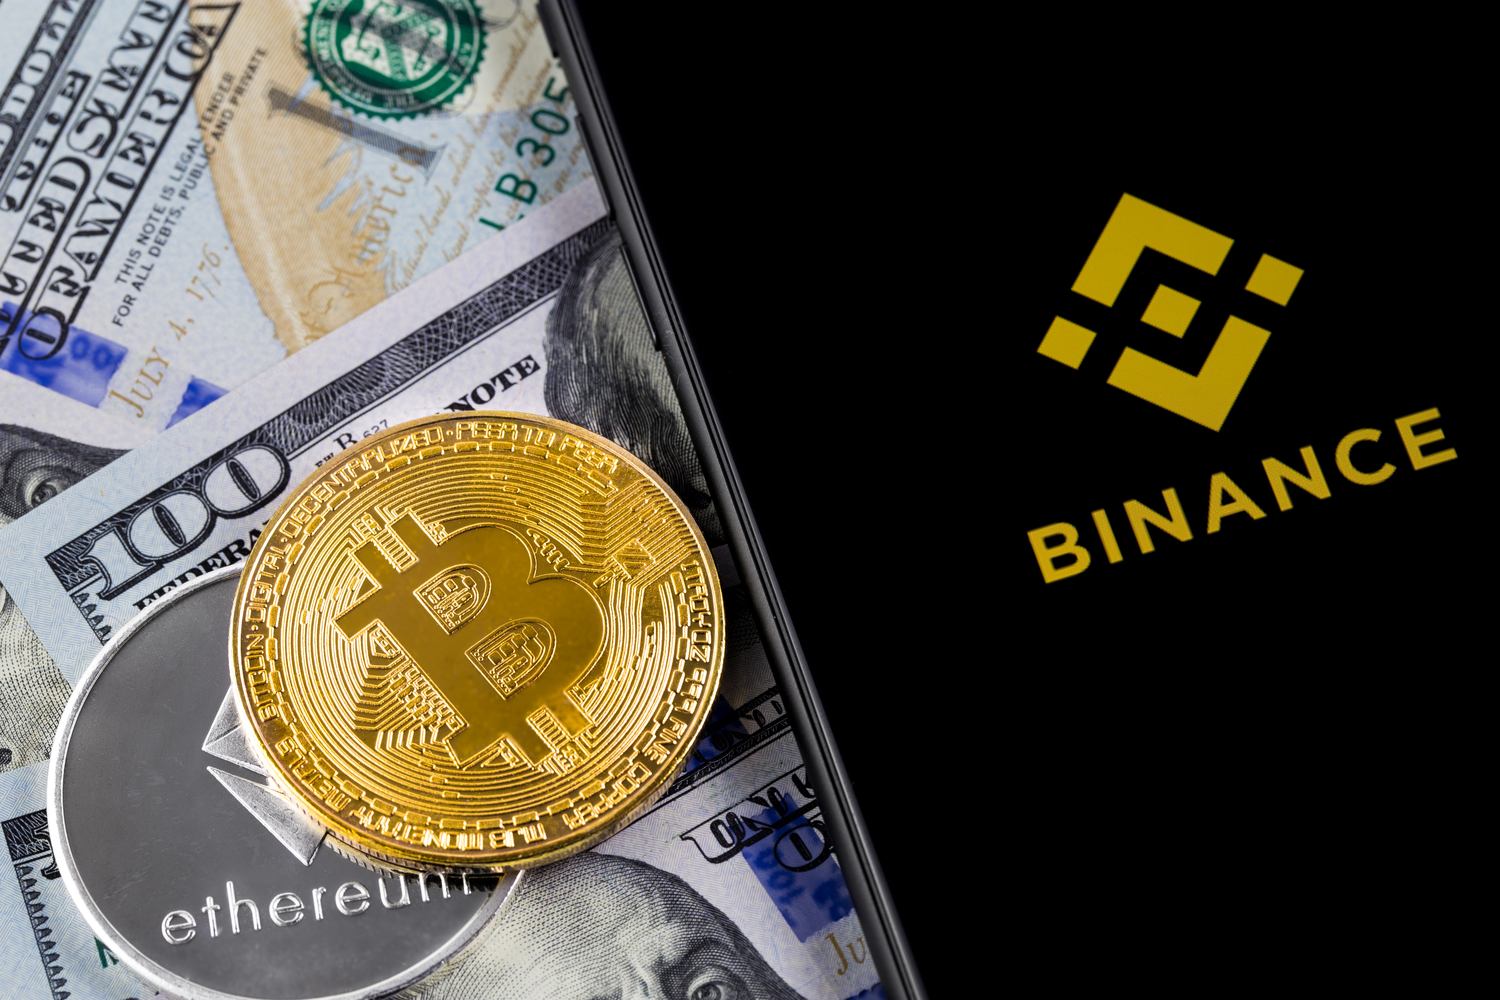 Stolen Binance Funds Still Being Laundered Through Mixers, Researchers Claim thumbnail